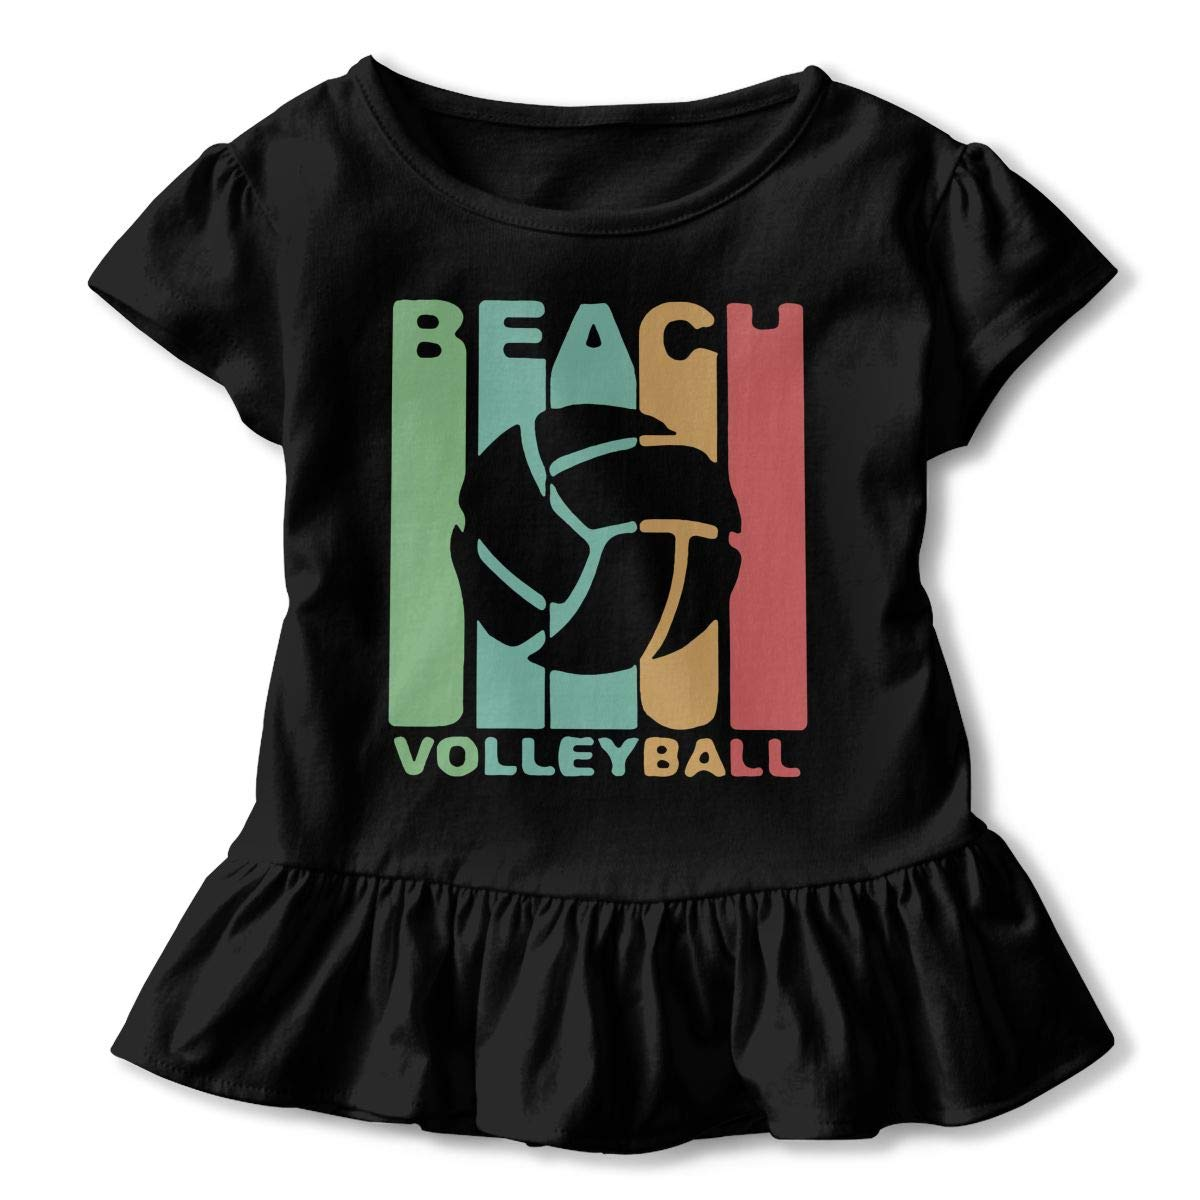 Vintage Beach Volleyball Toddler//Infant Girls Short Sleeve Ruffles Shirt Tee for 2-6 Toddlers